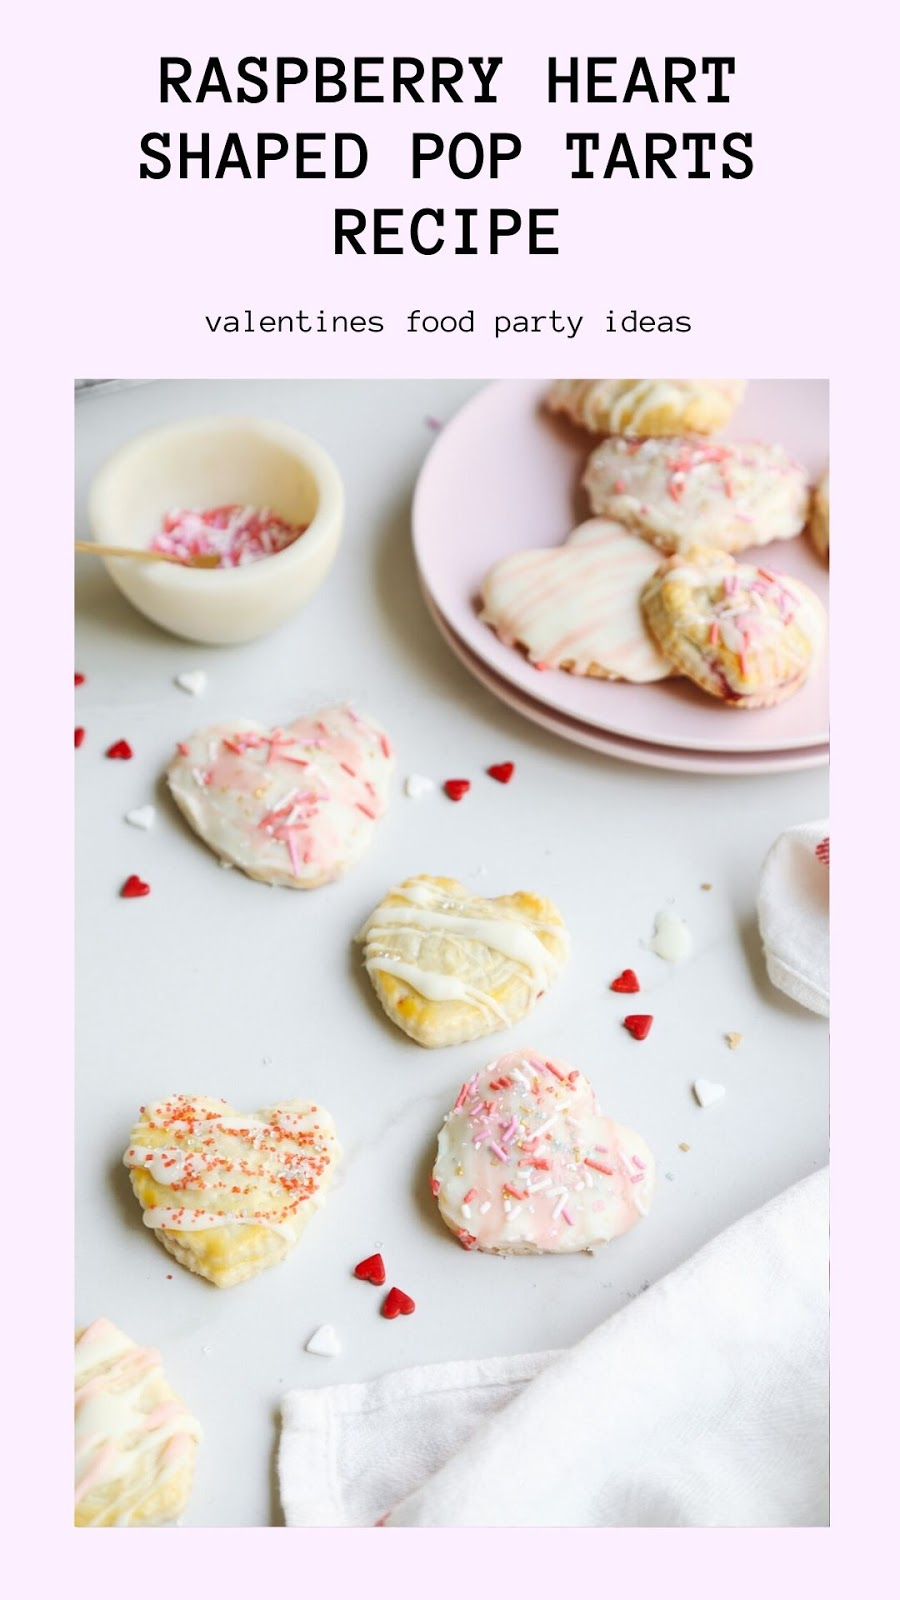 RASPBERRY HEART SHAPED POP TARTS RECIPE